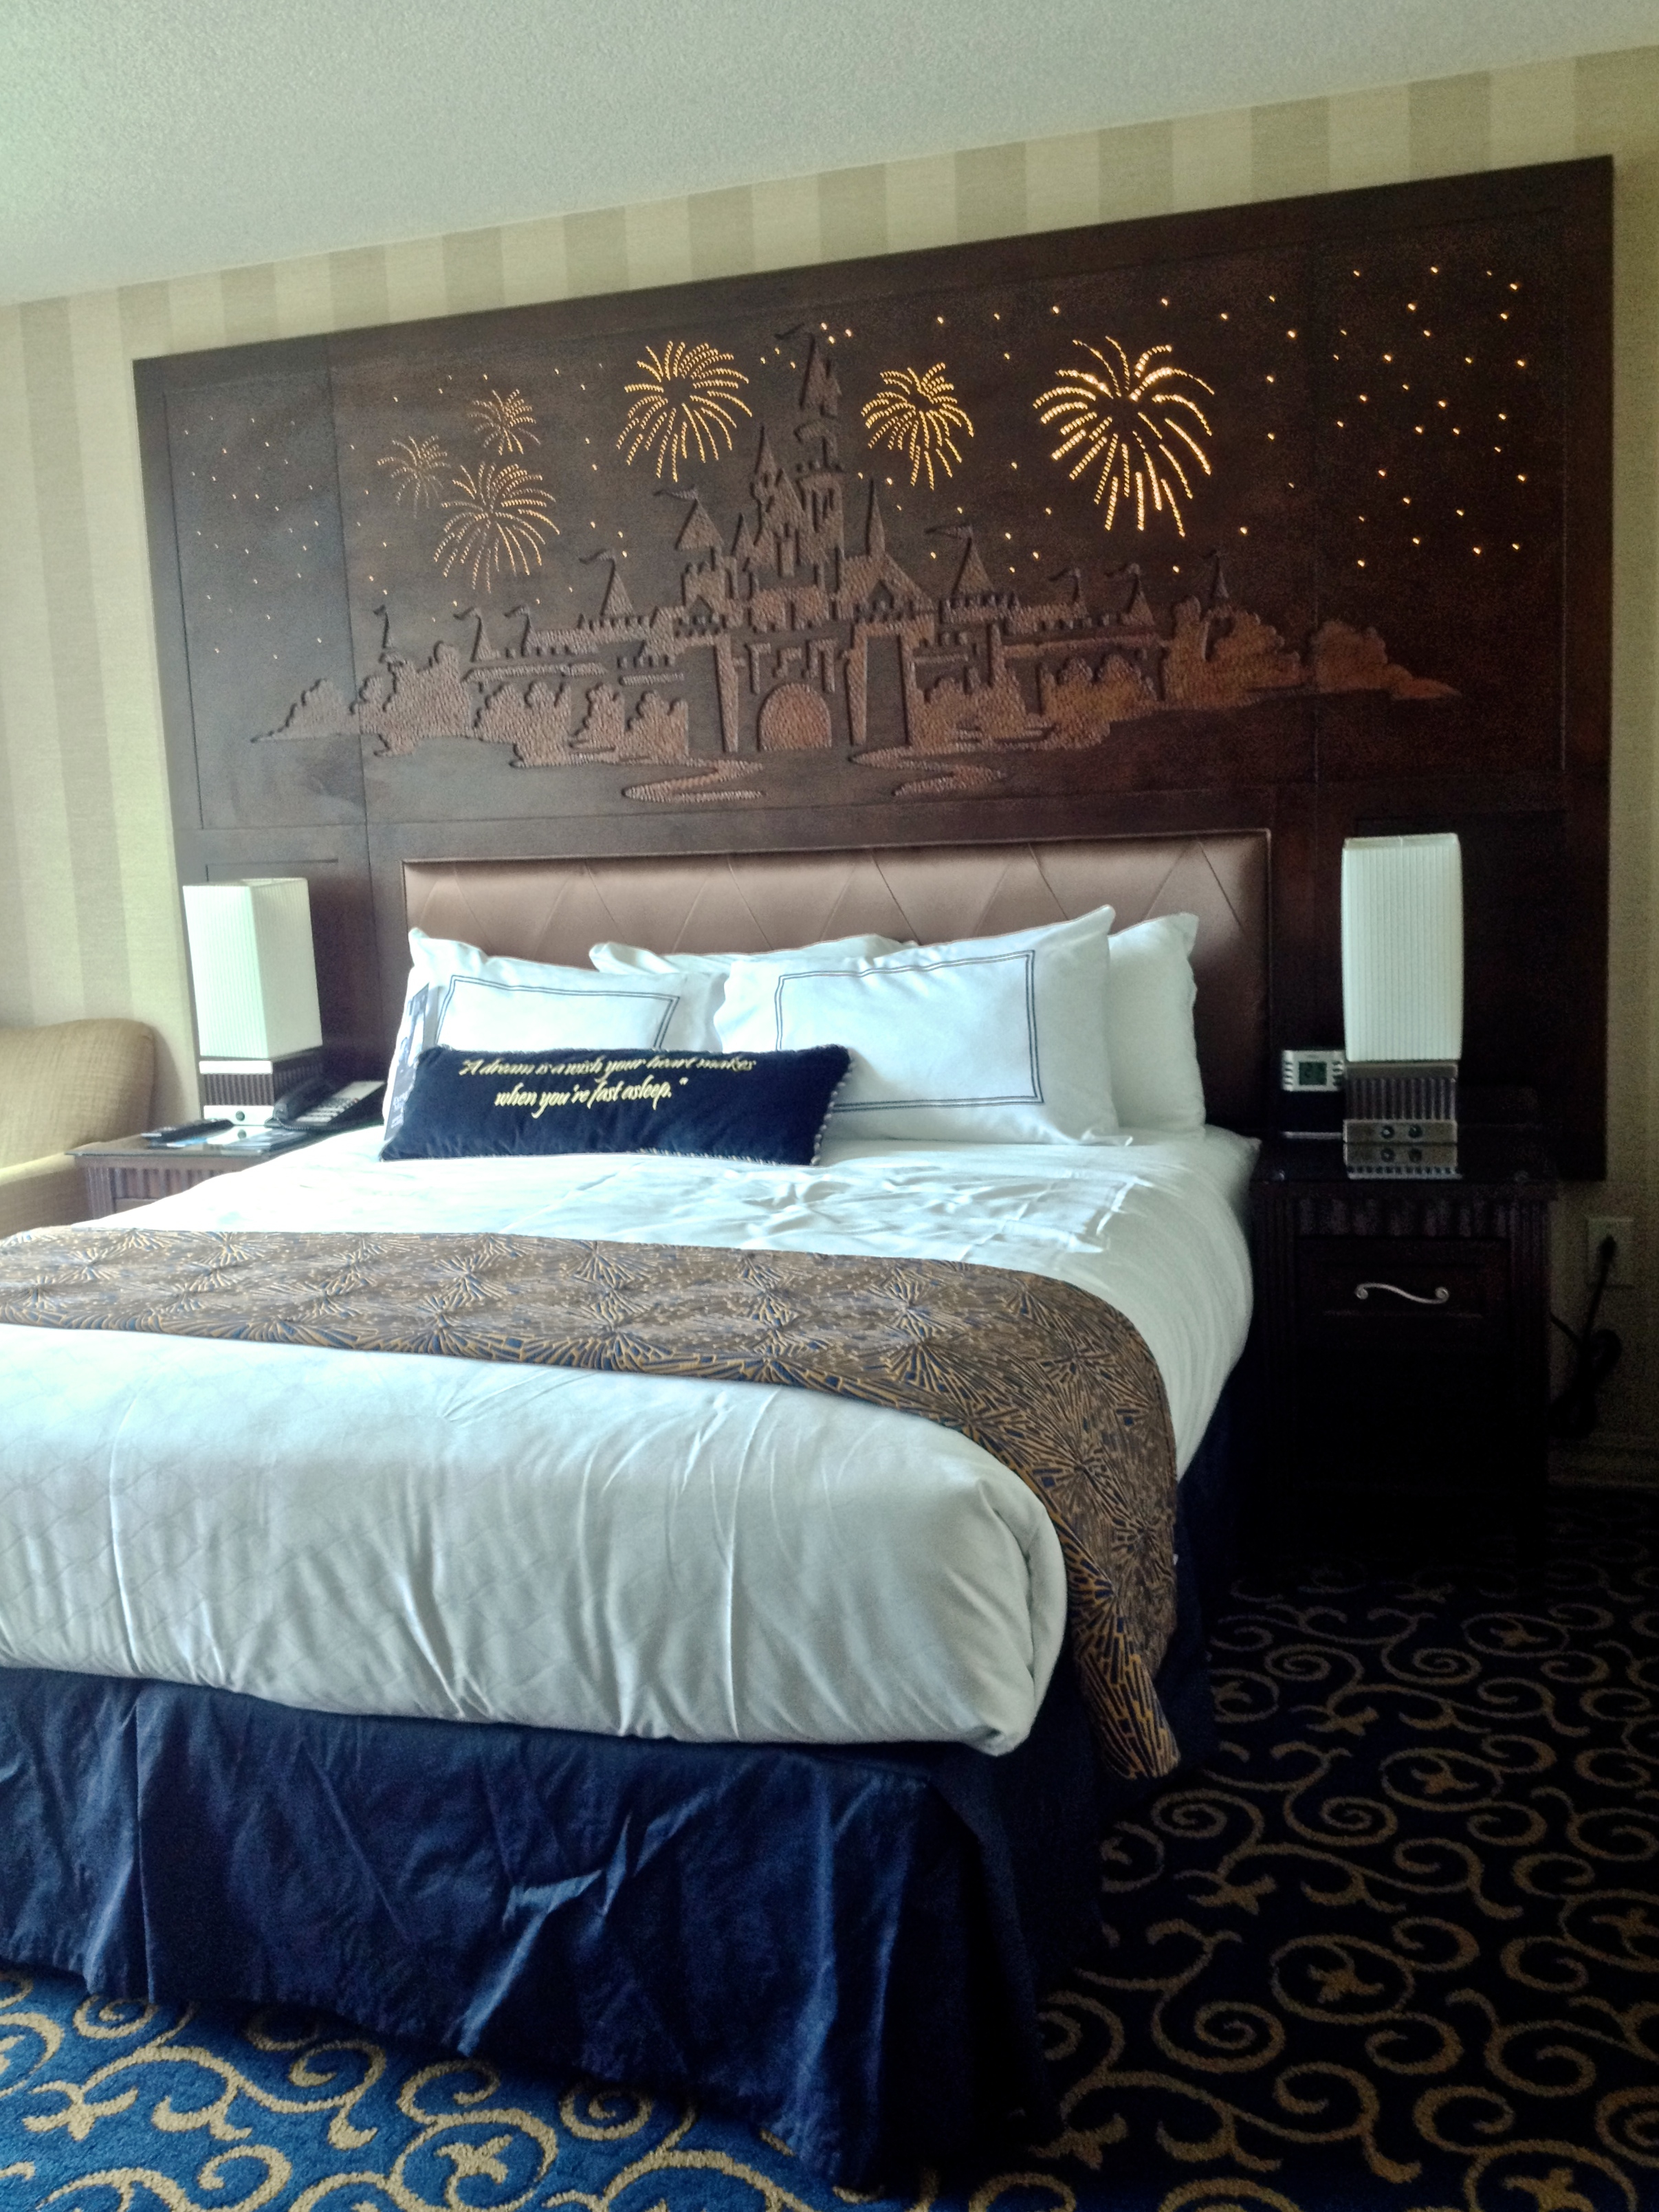 disneyland-hotel-light-up-headboard.jpg